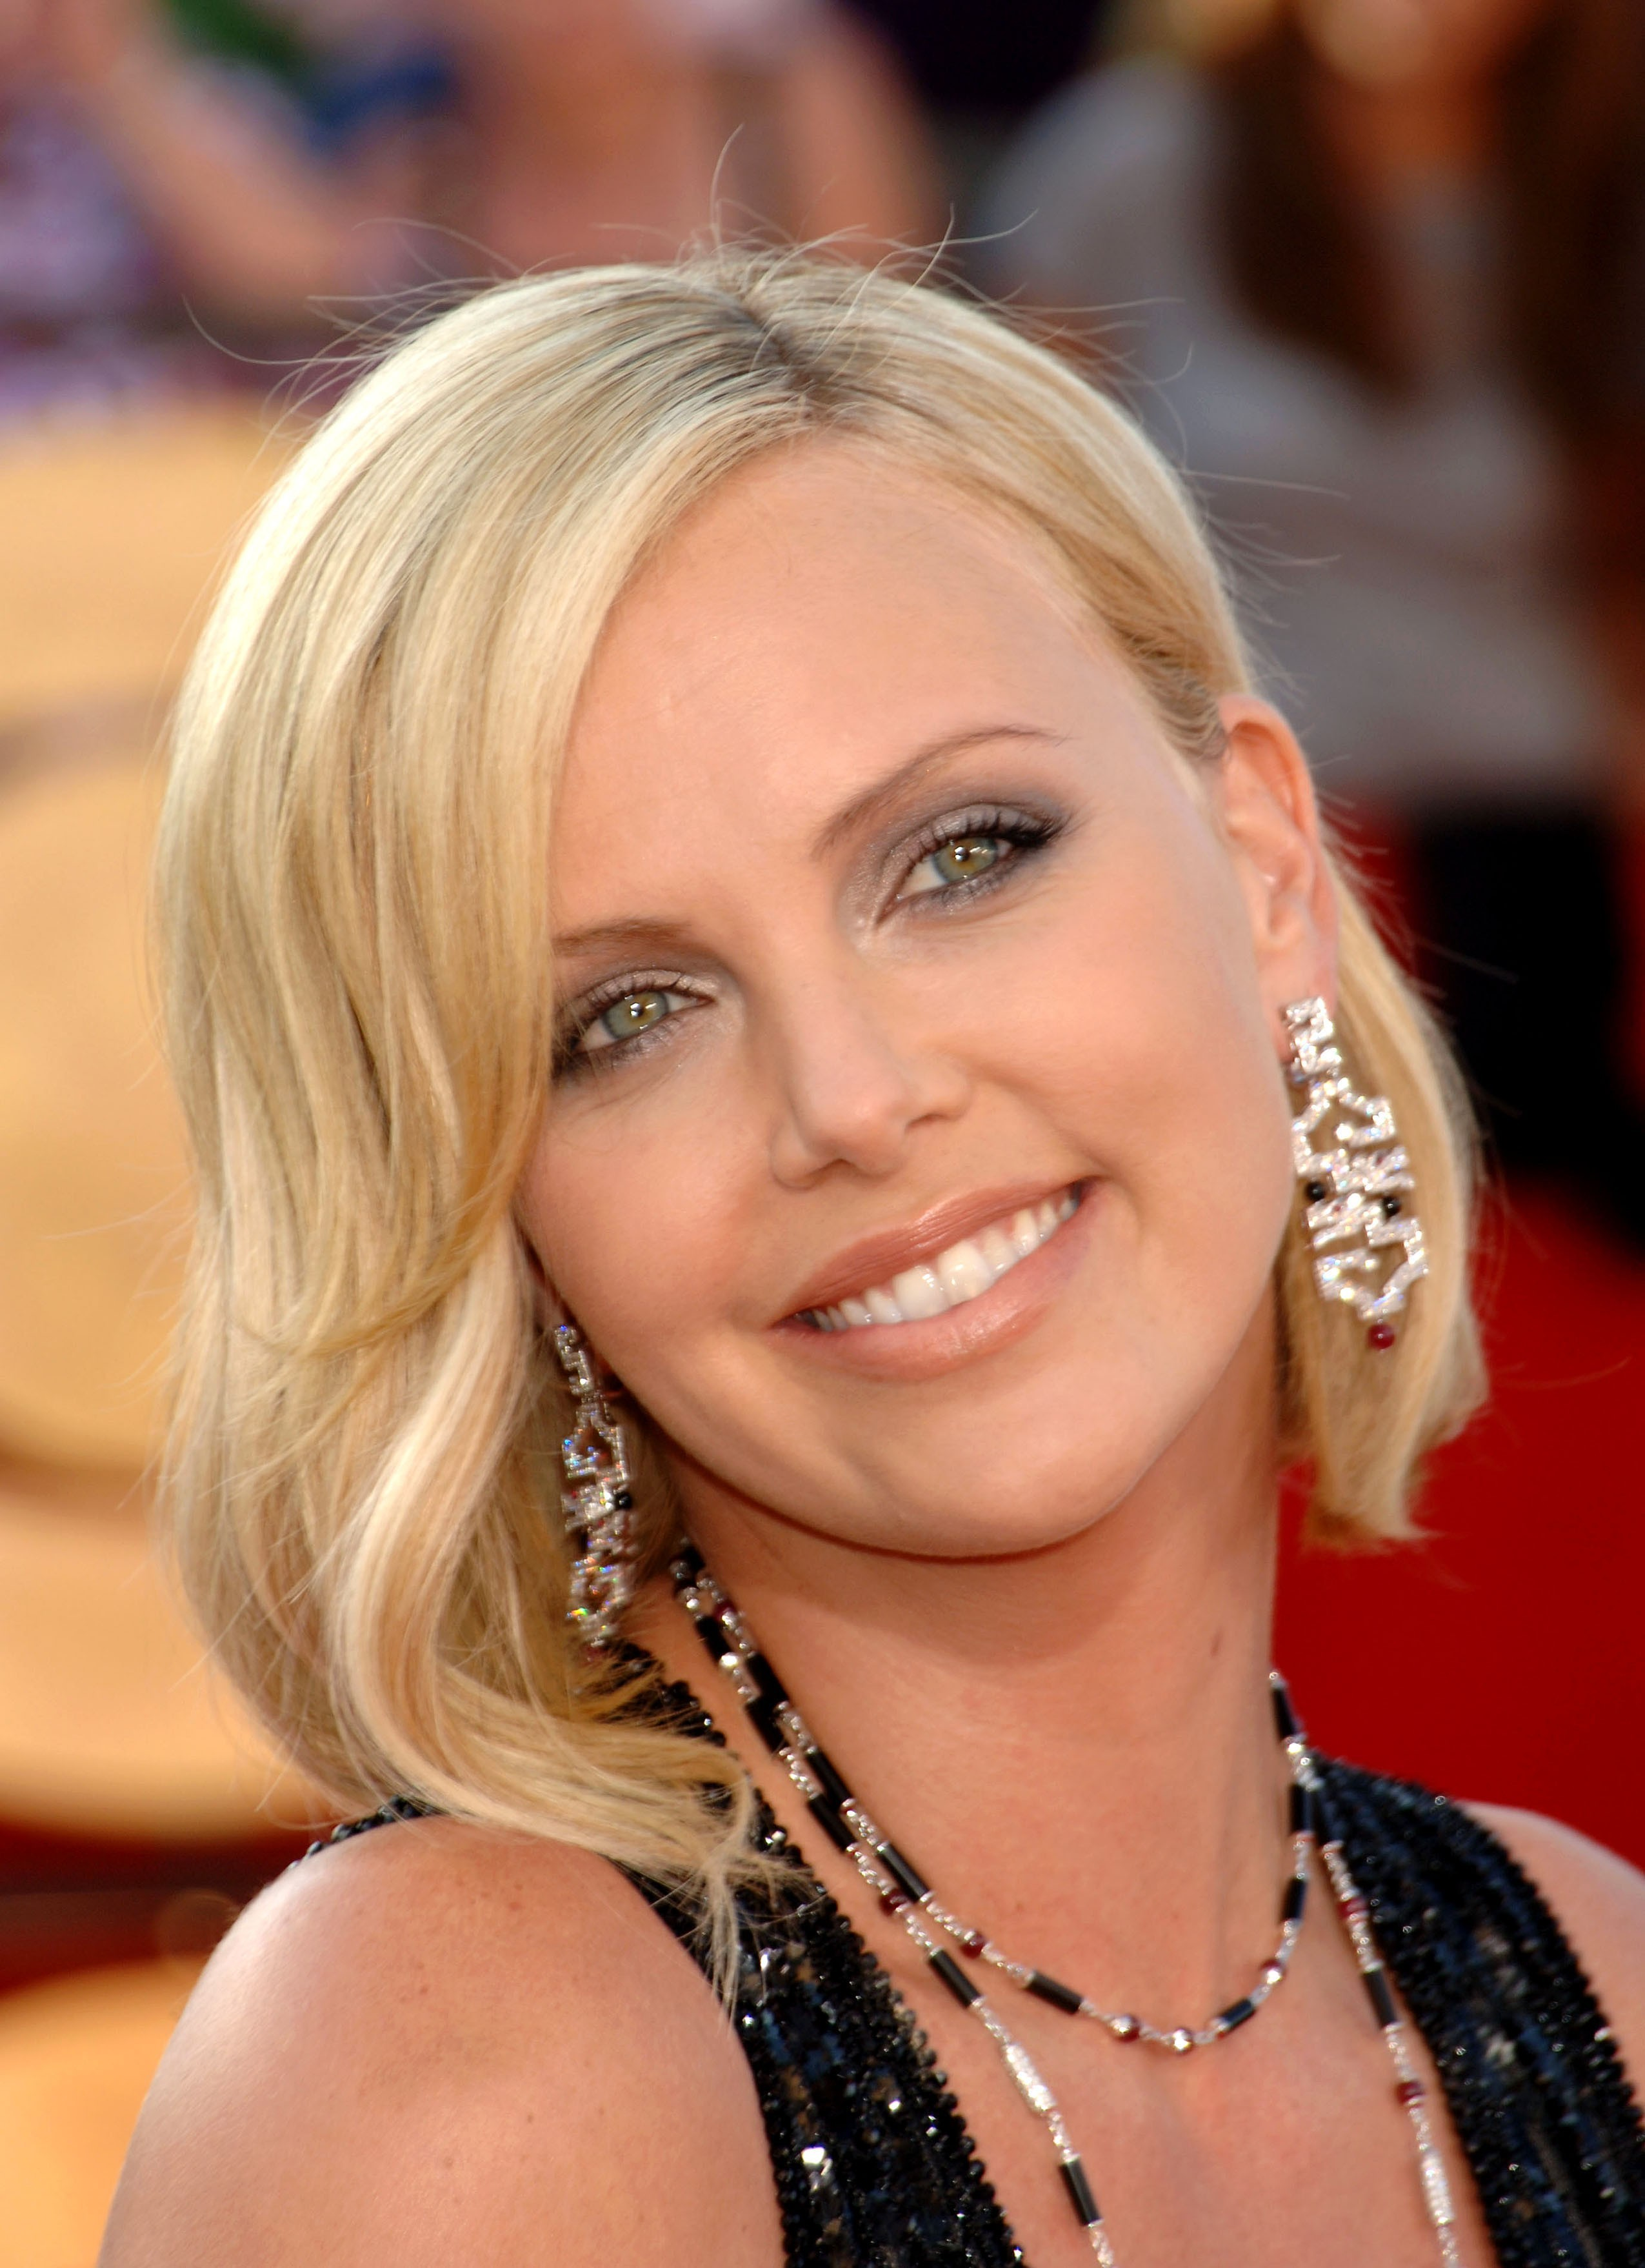 charlize theron Celebrity cities HD Wallpaper